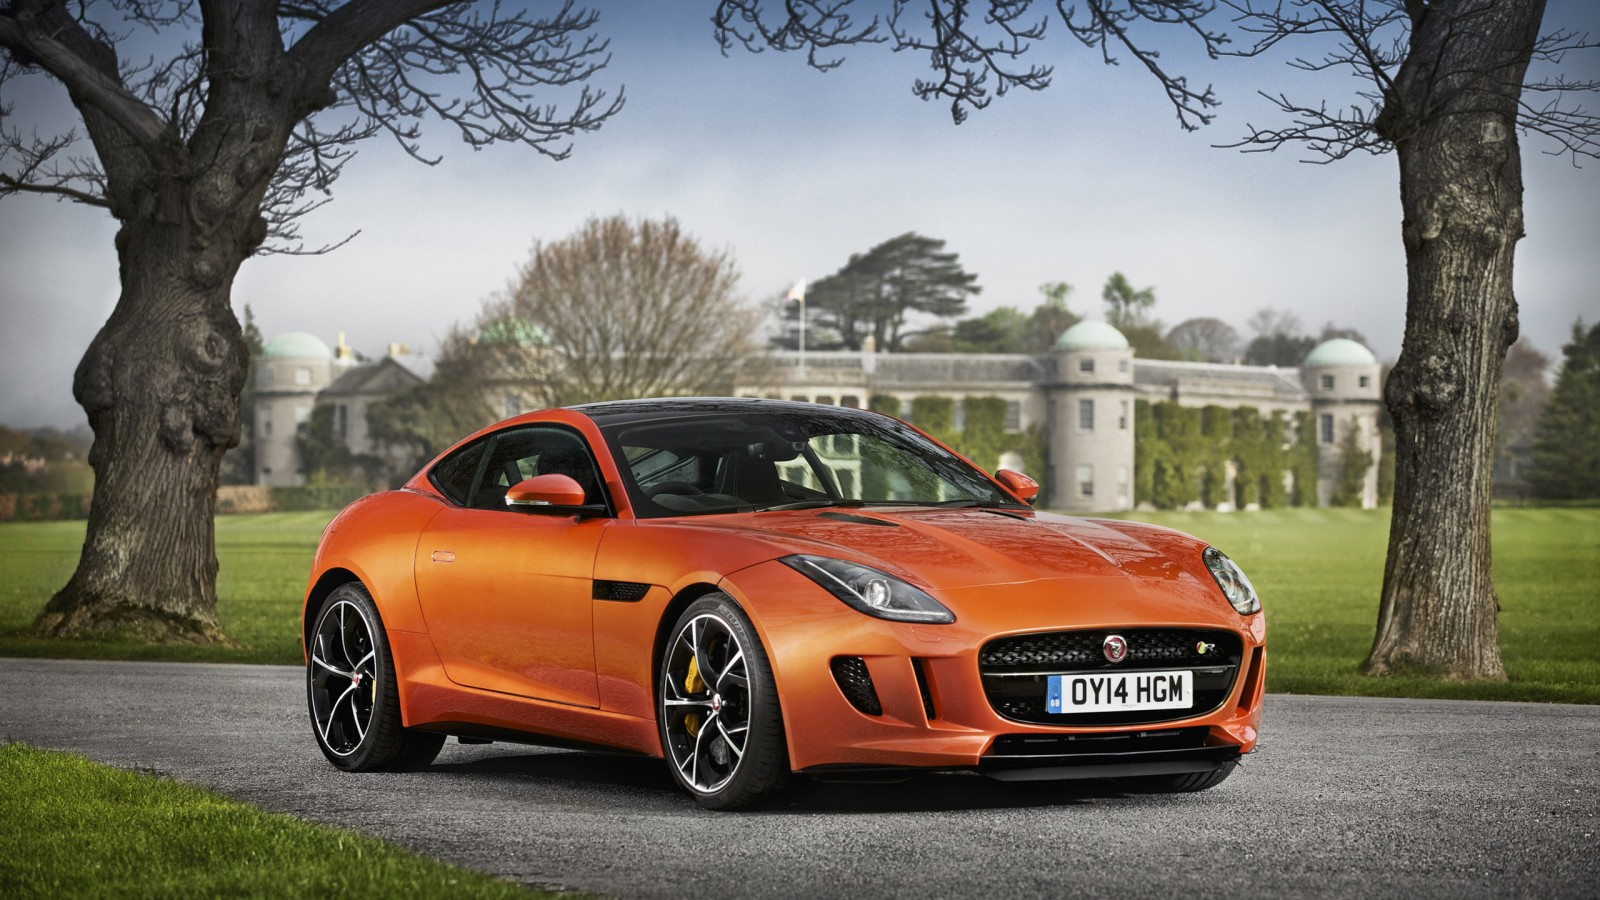 Jaguar f type coupe wallpaper - photo#13